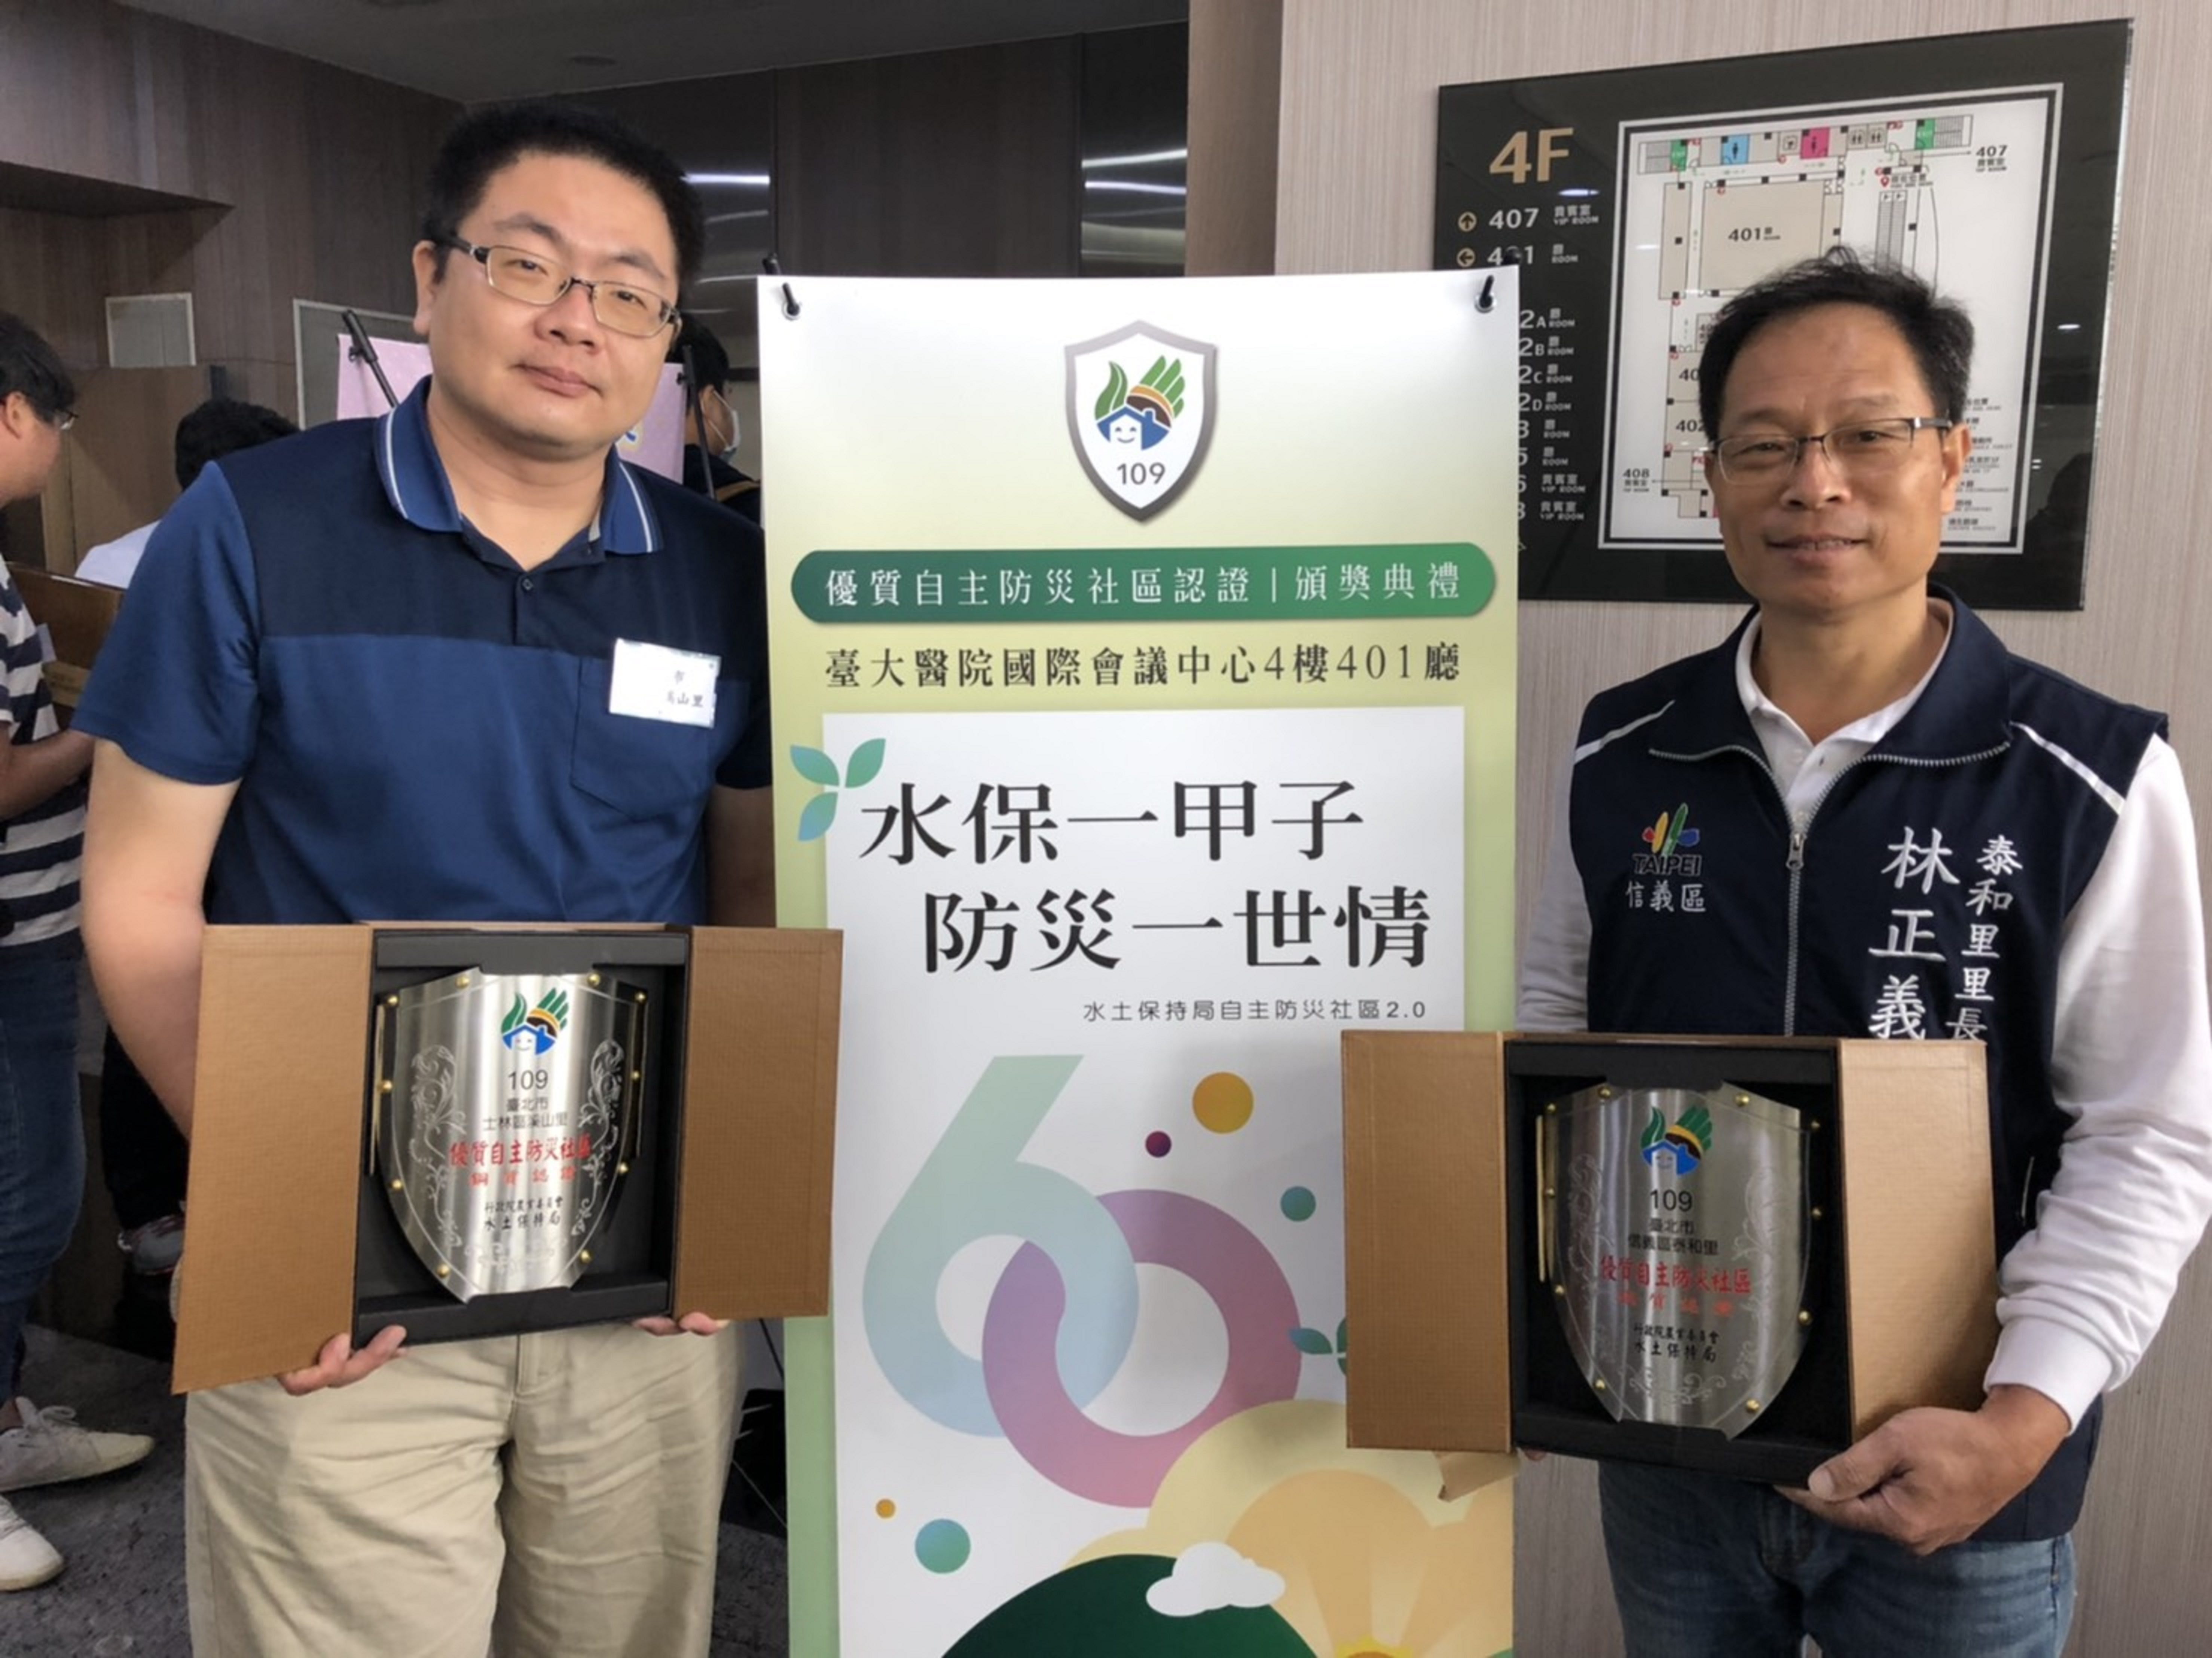 Two communities in Taipei recognized by SWCB for their disaster prevention efforts